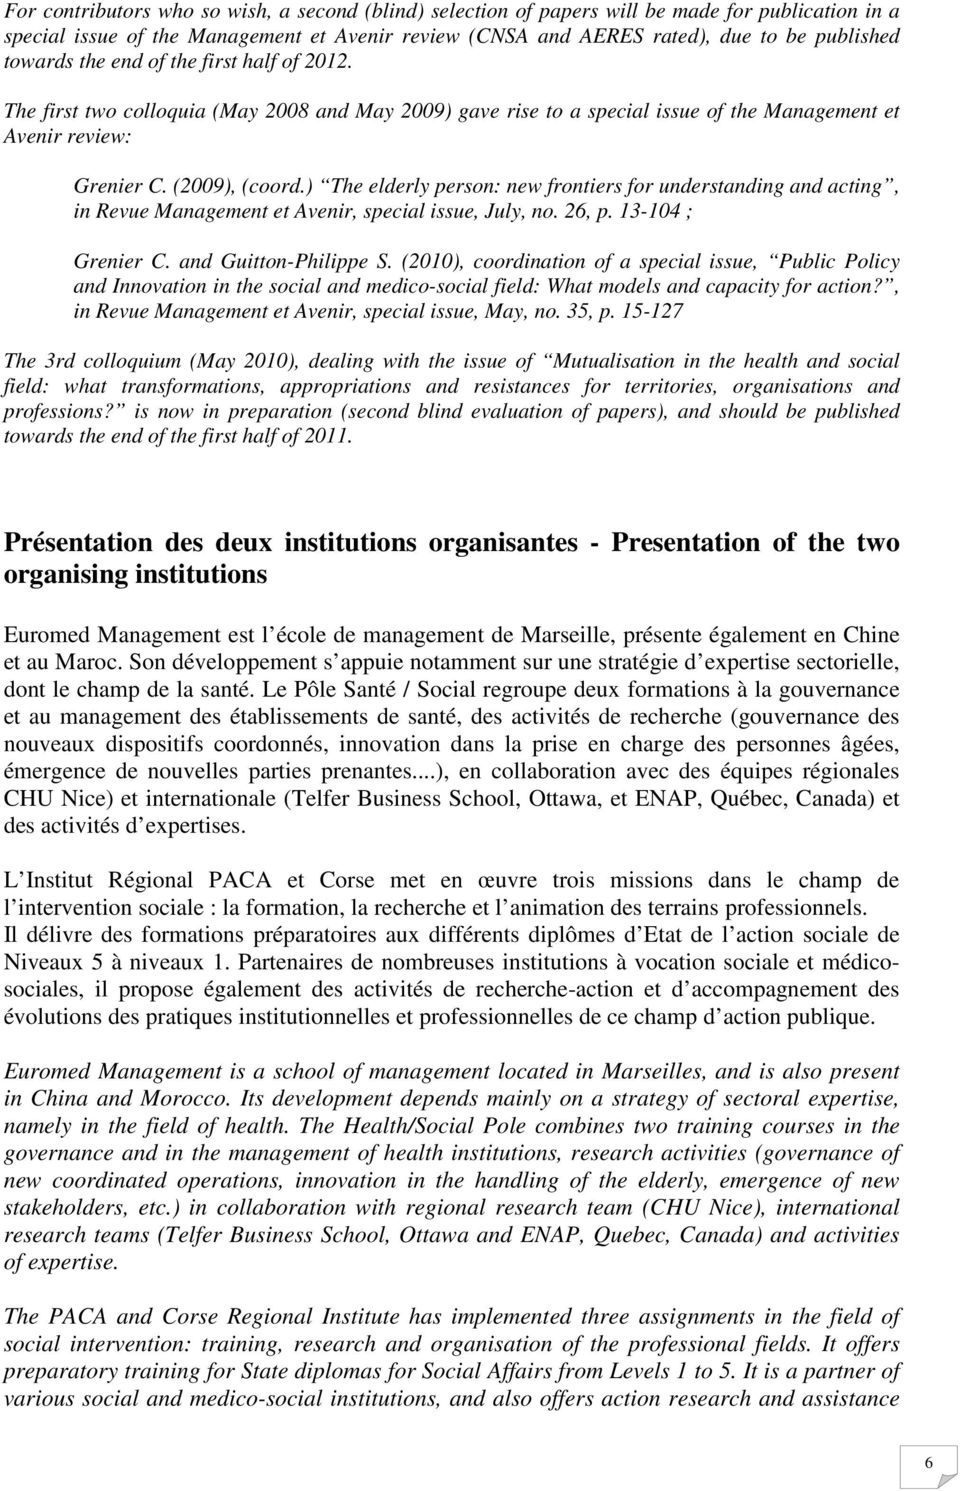 ) The elderly person: new frontiers for understanding and acting, in Revue Management et Avenir, special issue, July, no. 26, p. 13-104 ; Grenier C. and Guitton-Philippe S.